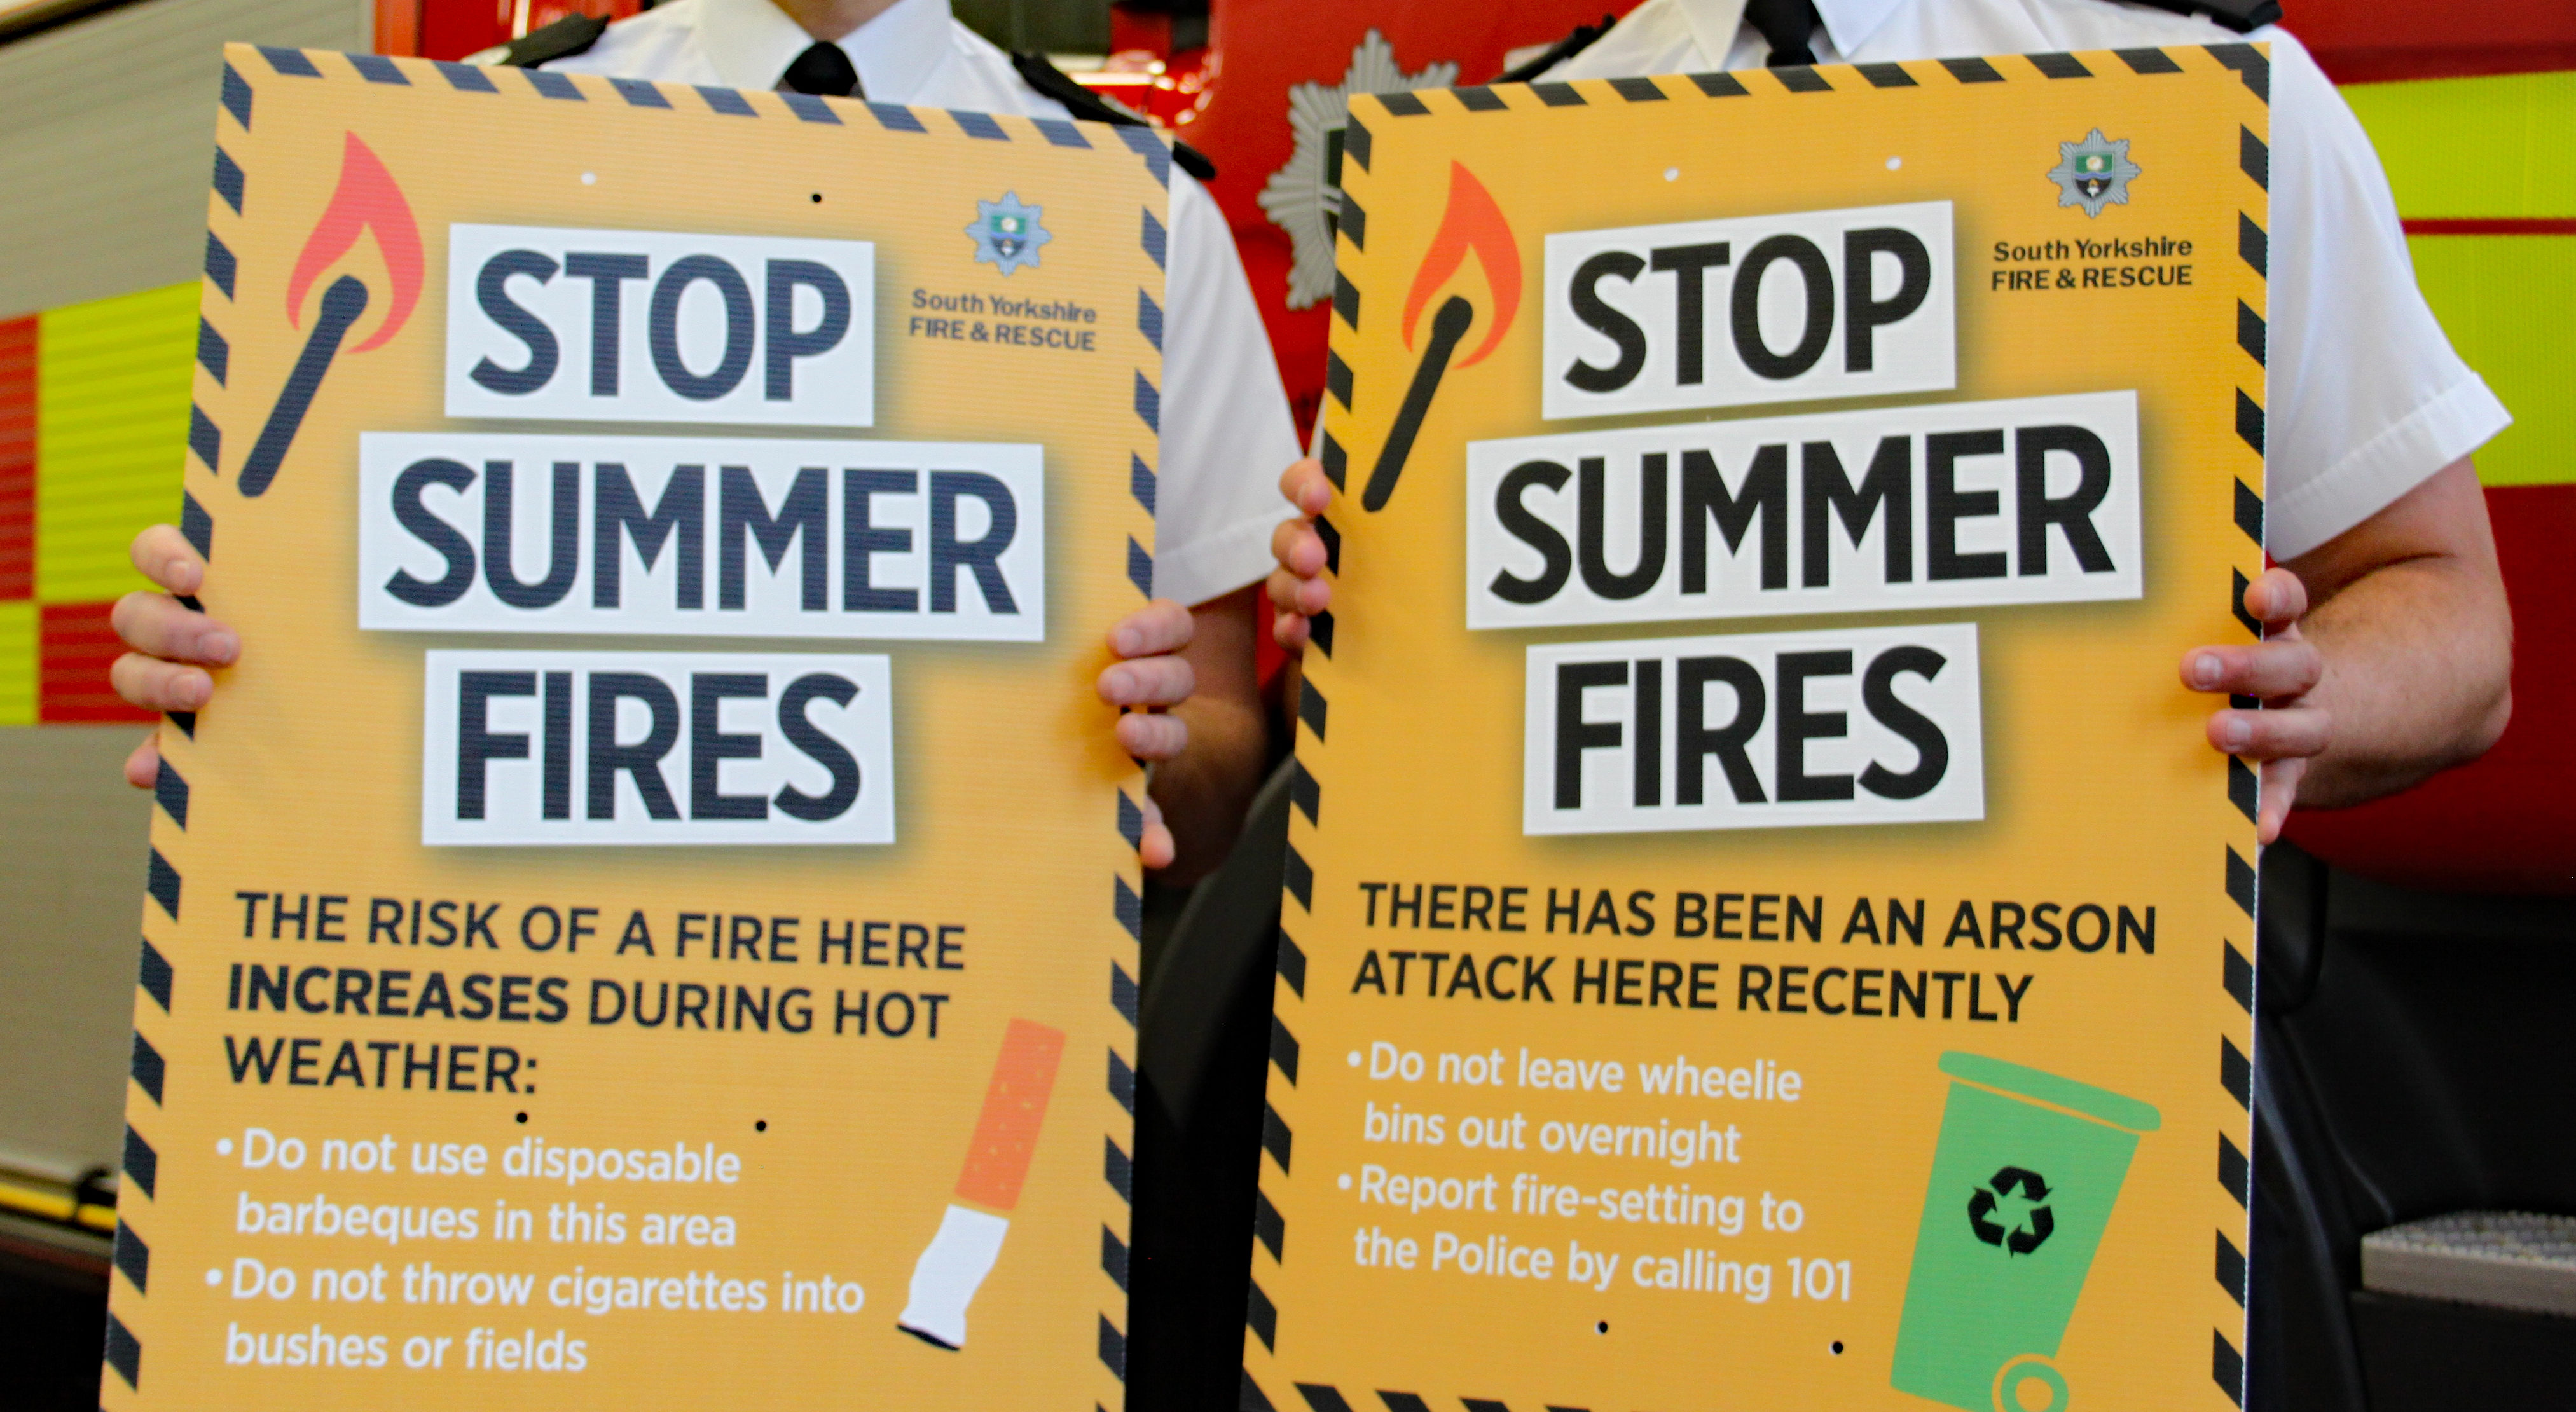 Fire Service Asks For Public Help After Hottest Summer On Record South Yorkshire Fire And Rescue